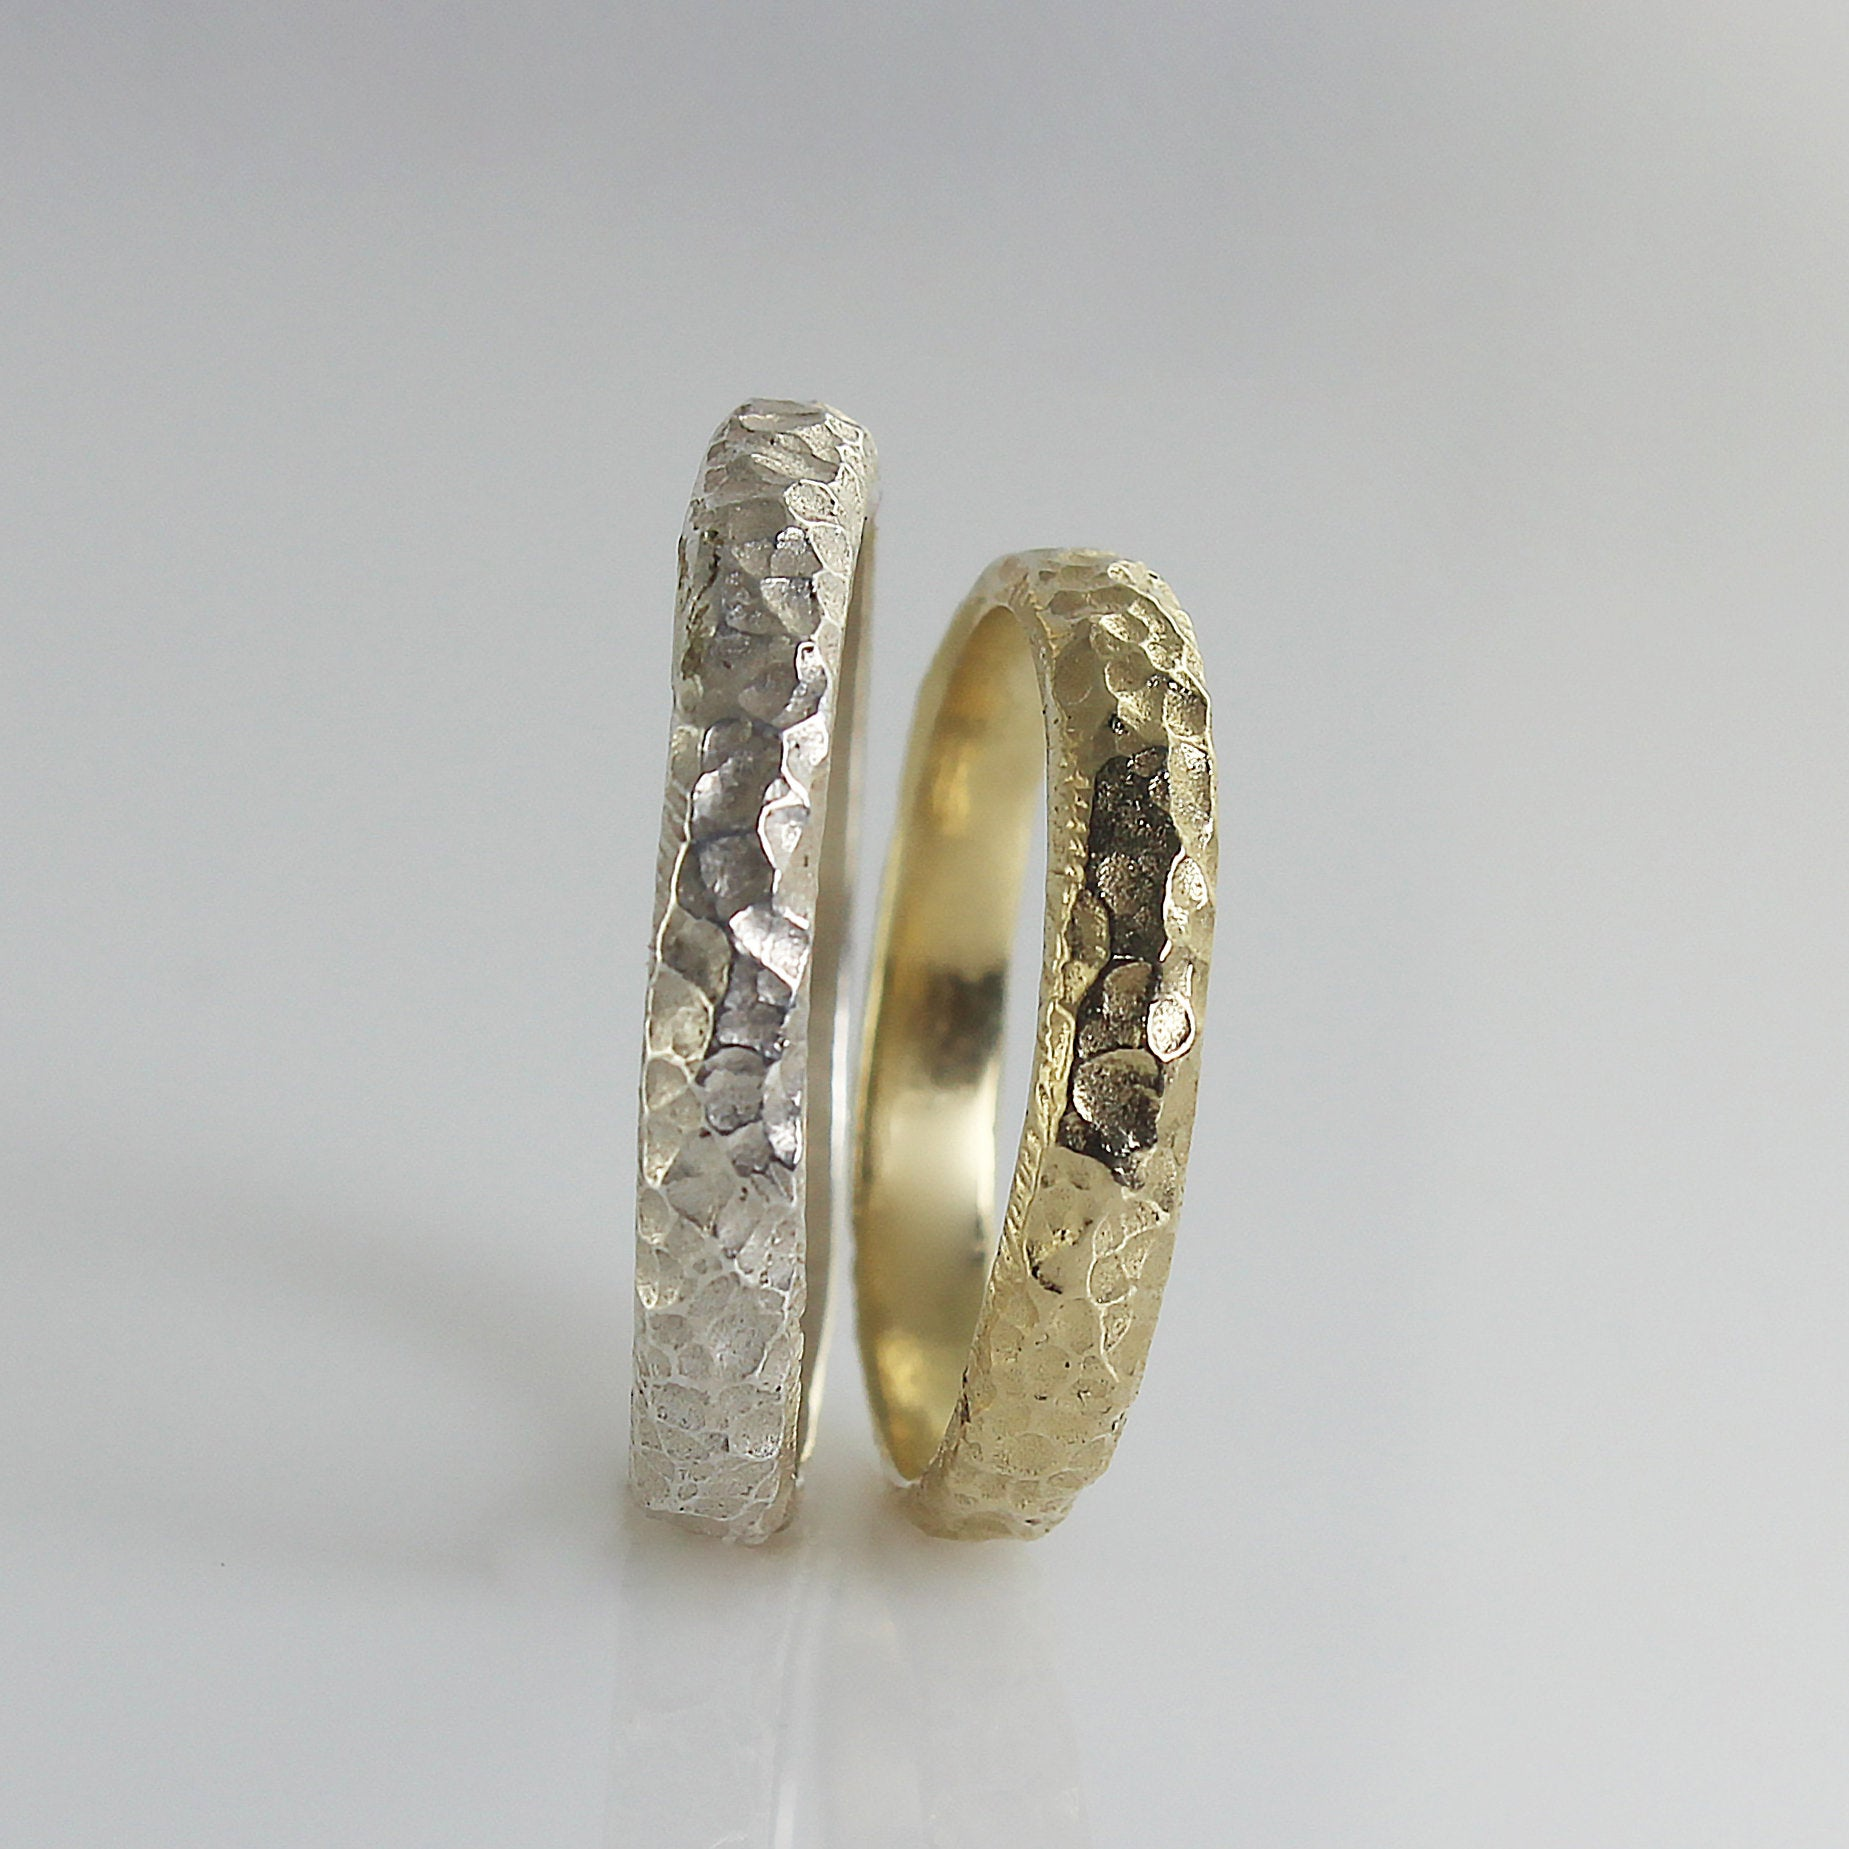 Wedding Band Set , Matching Wedding Bands White Gold Rough Hammered Texture Unisex Ring Band, His & Hers Band